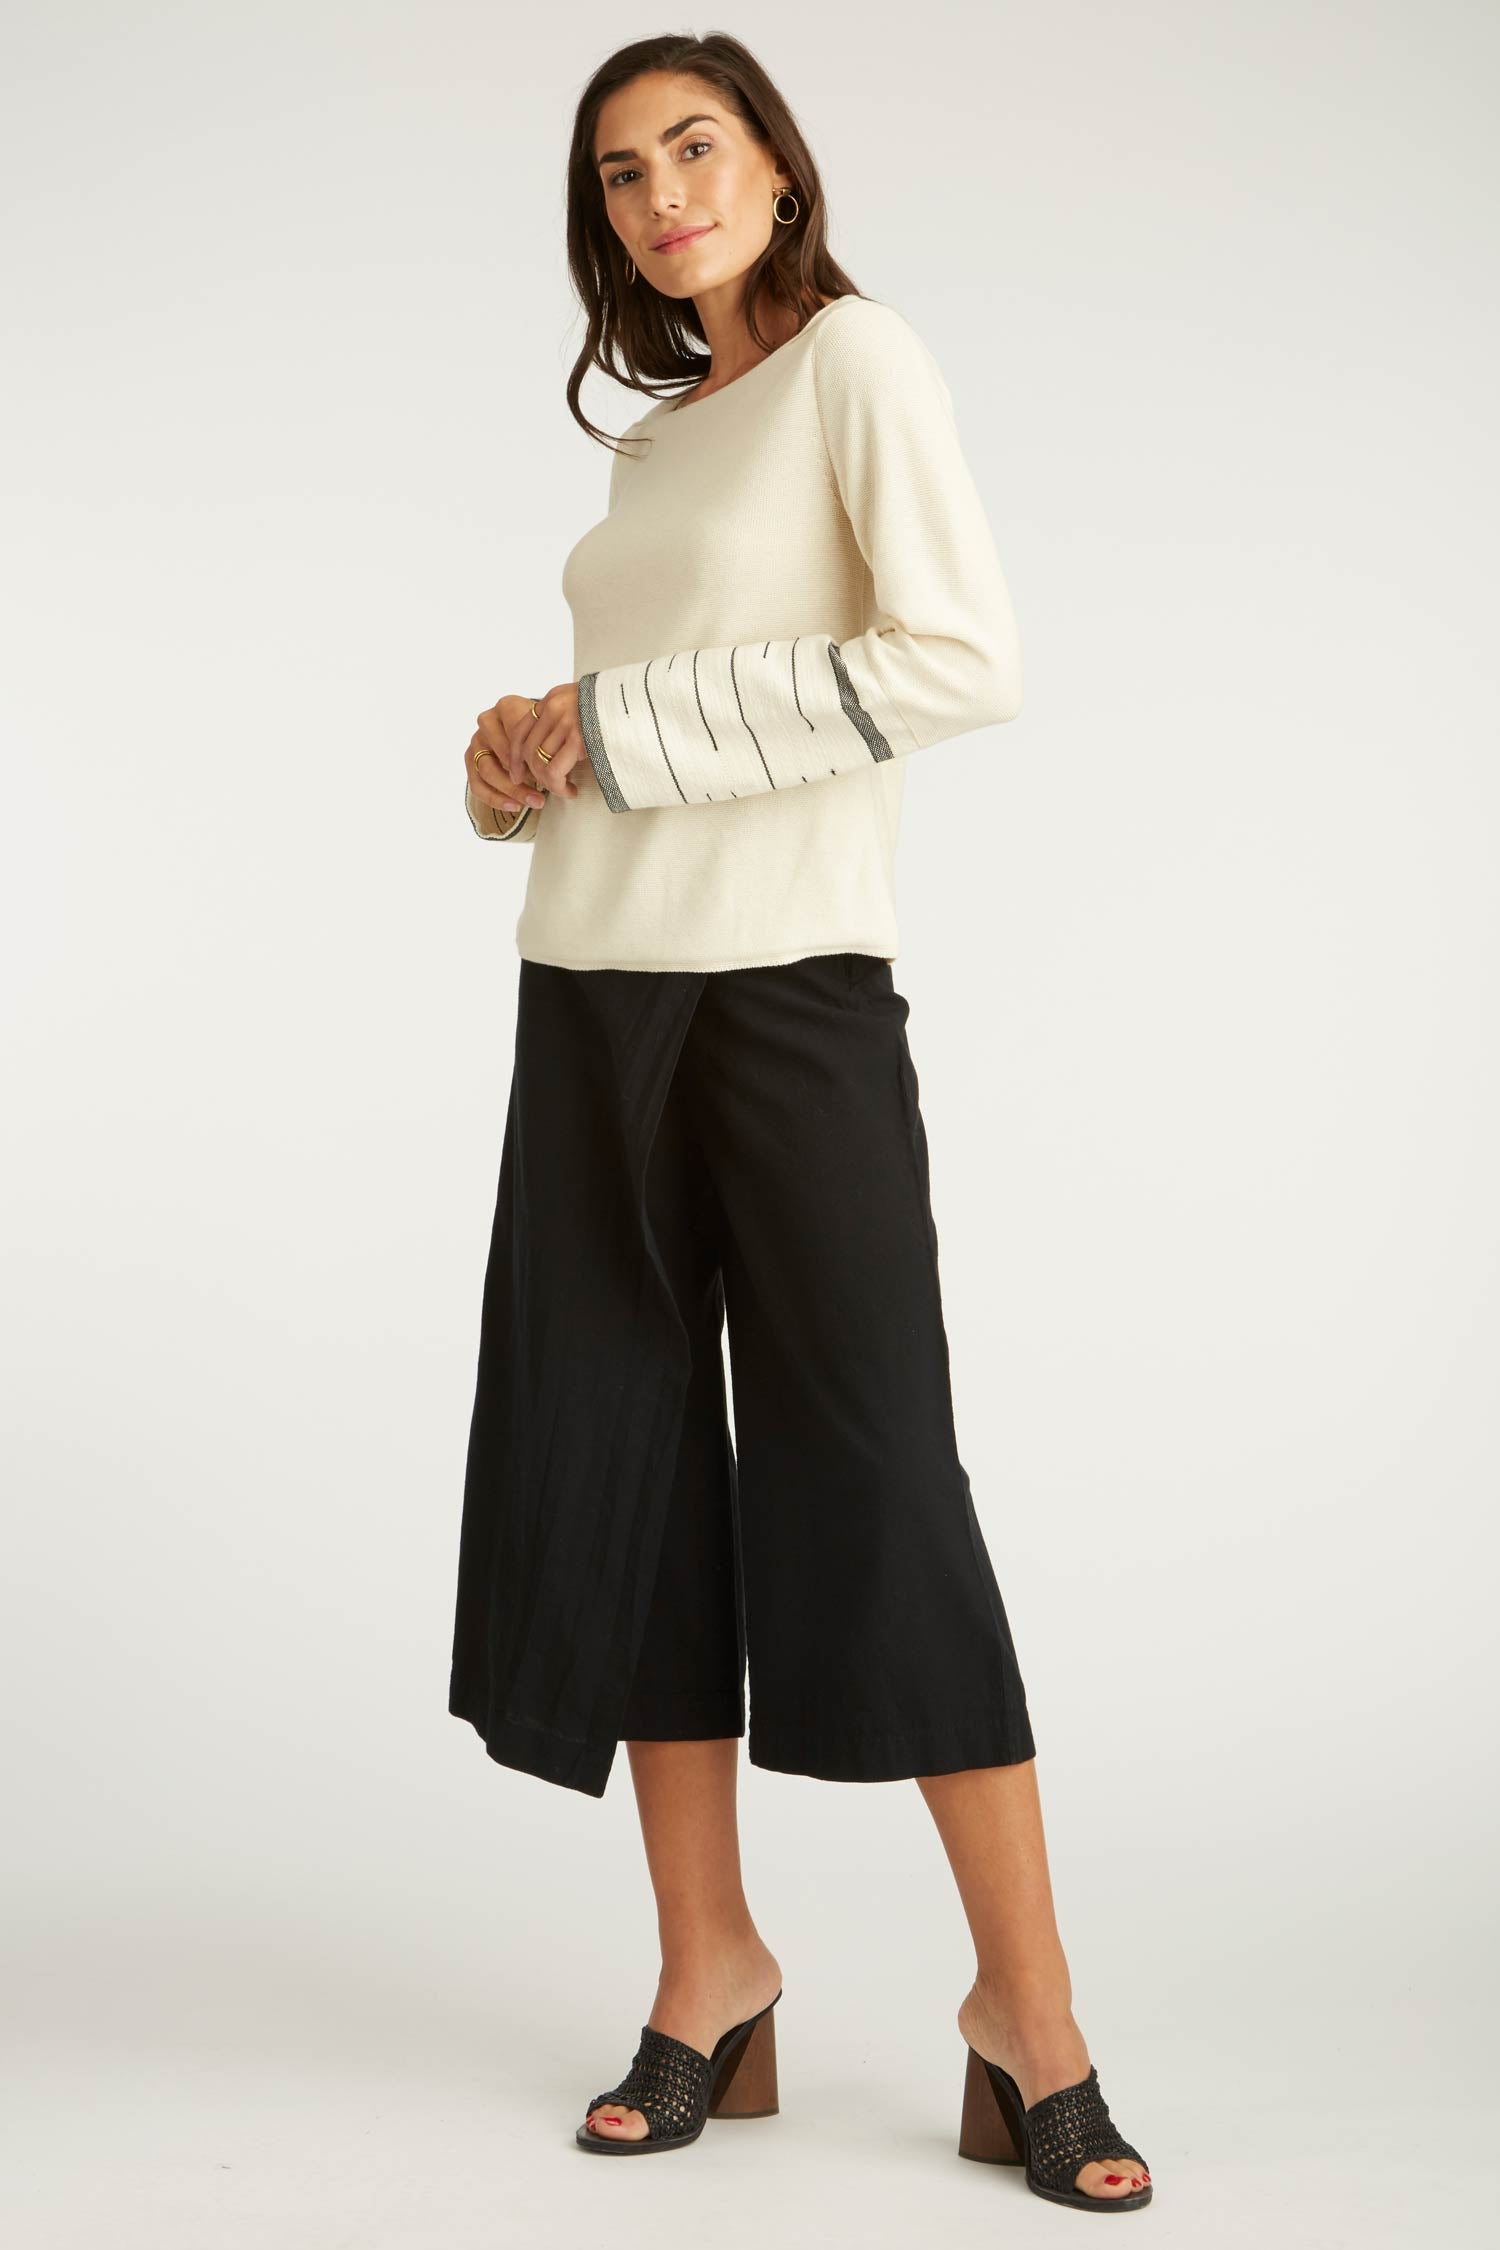 Womens Organic Cotton Clothing | Woven and Knit Sweater | Black Woven Pants